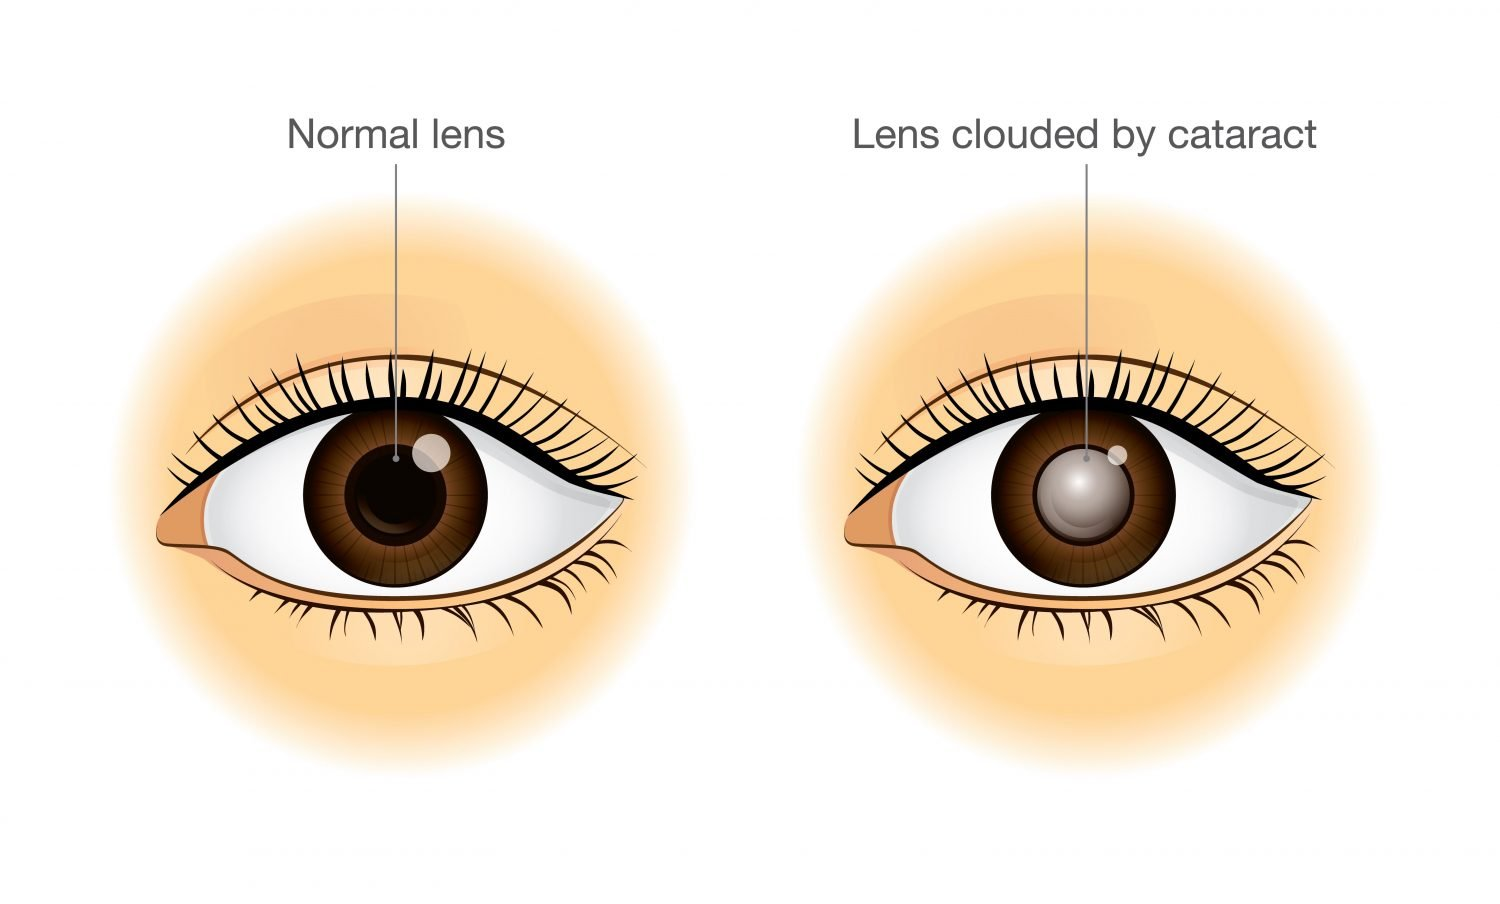 Comparison of Normal Lens and Lens clouded by Cataract